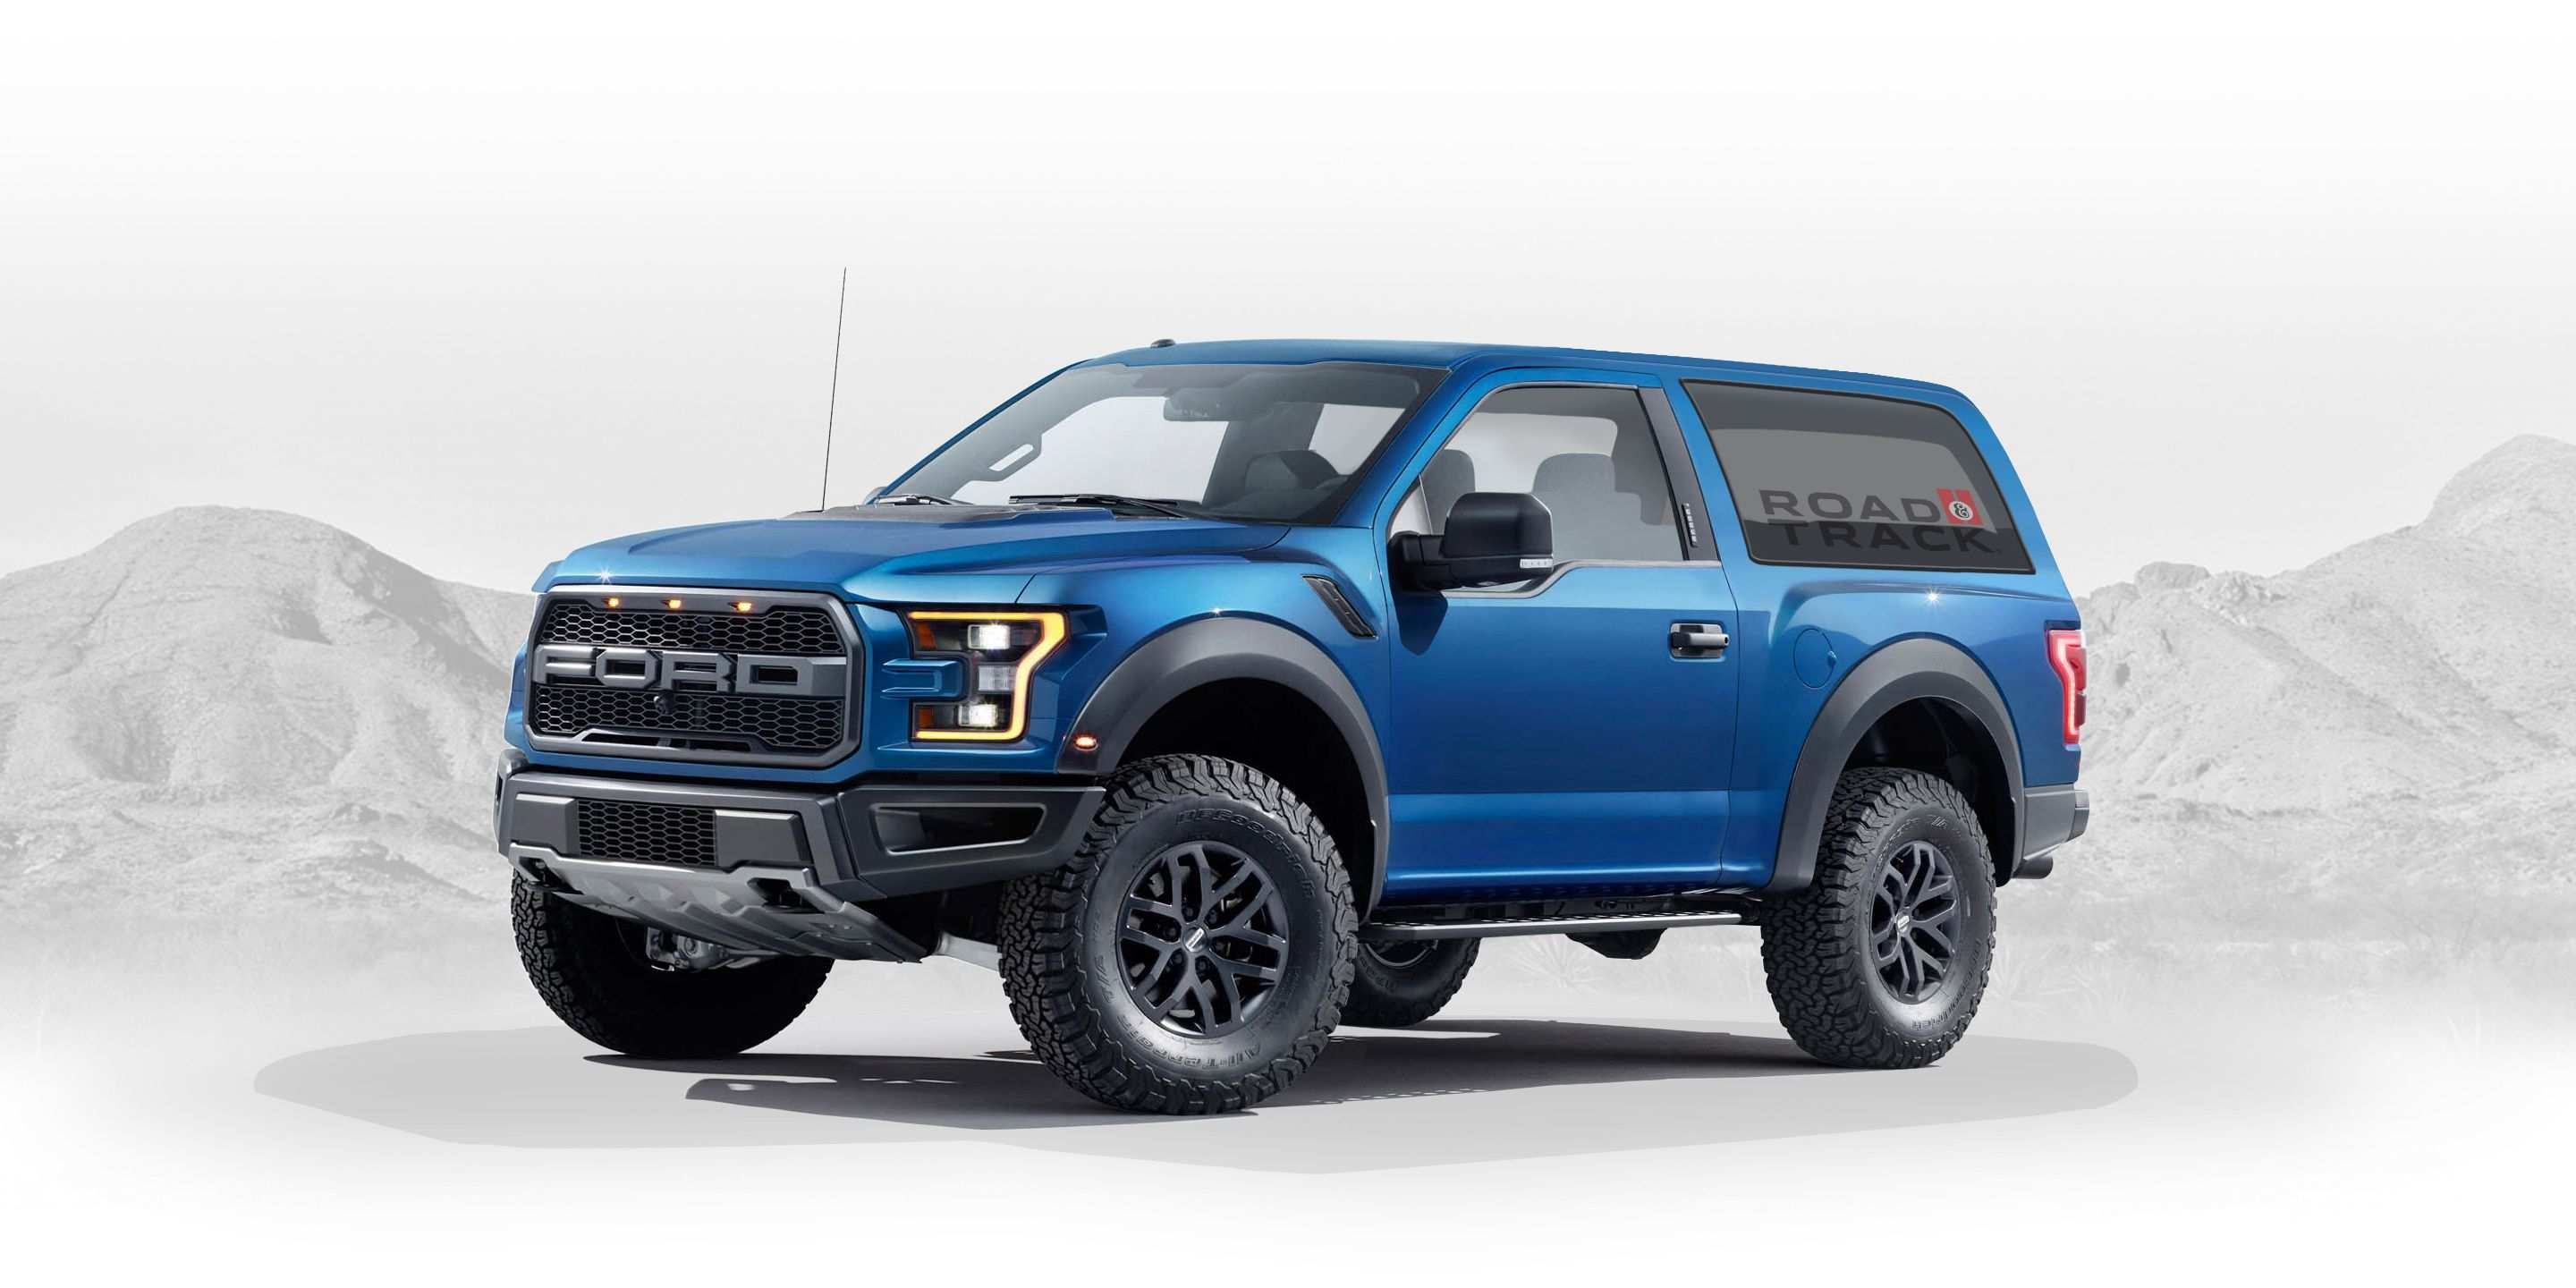 83 The 2020 Ford Bronco Usa Release Date with 2020 Ford Bronco Usa